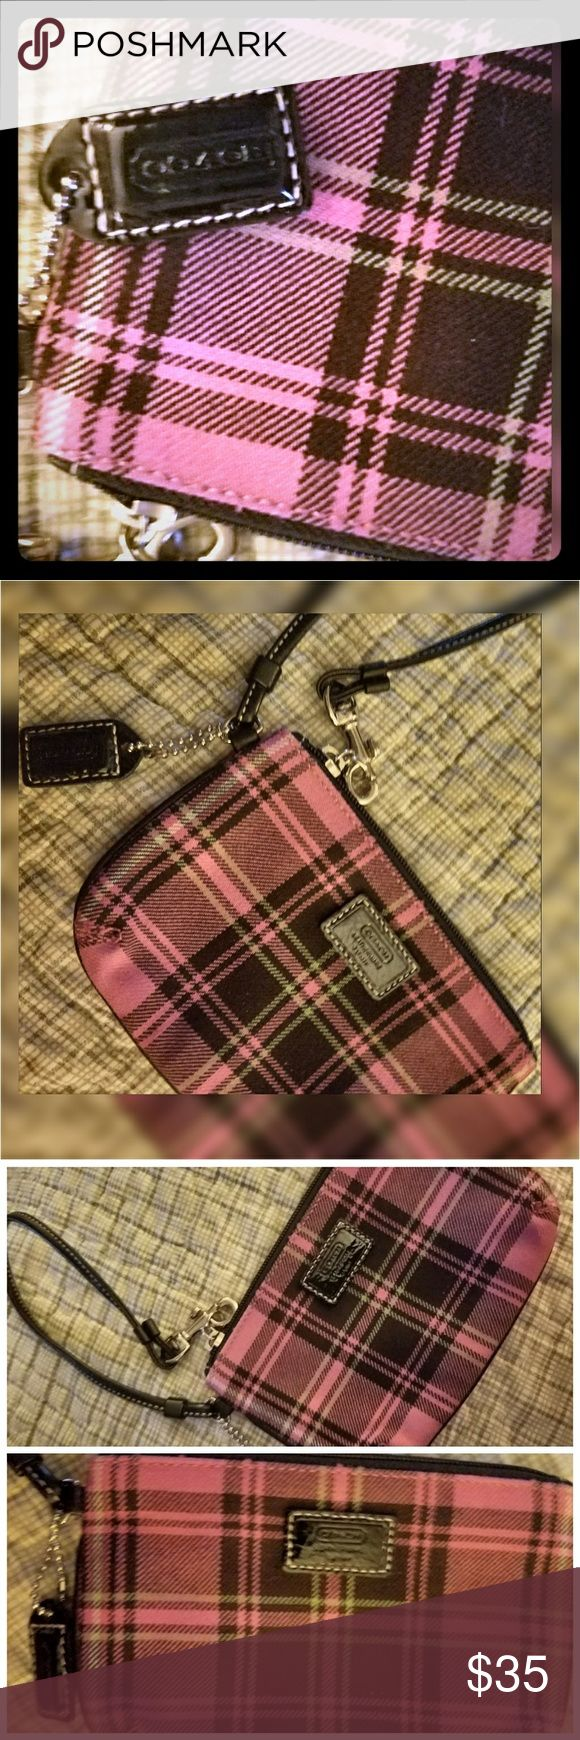 Authentic Coach Pink & Black Plaid Wristlet Just reduced from $40 to  $35 to cover most of the shipping. =)  Coach Pink & Black Plaid Wristlet  Like new!! Authentic! Purple, Black, Fushia (Pink) Checkered Has wrist strap and original Coach  hangtag  in black.  No wear! As you can see from the pictures.   Zipper works great! Originally $150 Great for your cash, cards, credit cards, ID, coins, and a lipstick or compact.  Smoke free.  **Free VS lanyard....my choice...with purchase. Coach Bags…